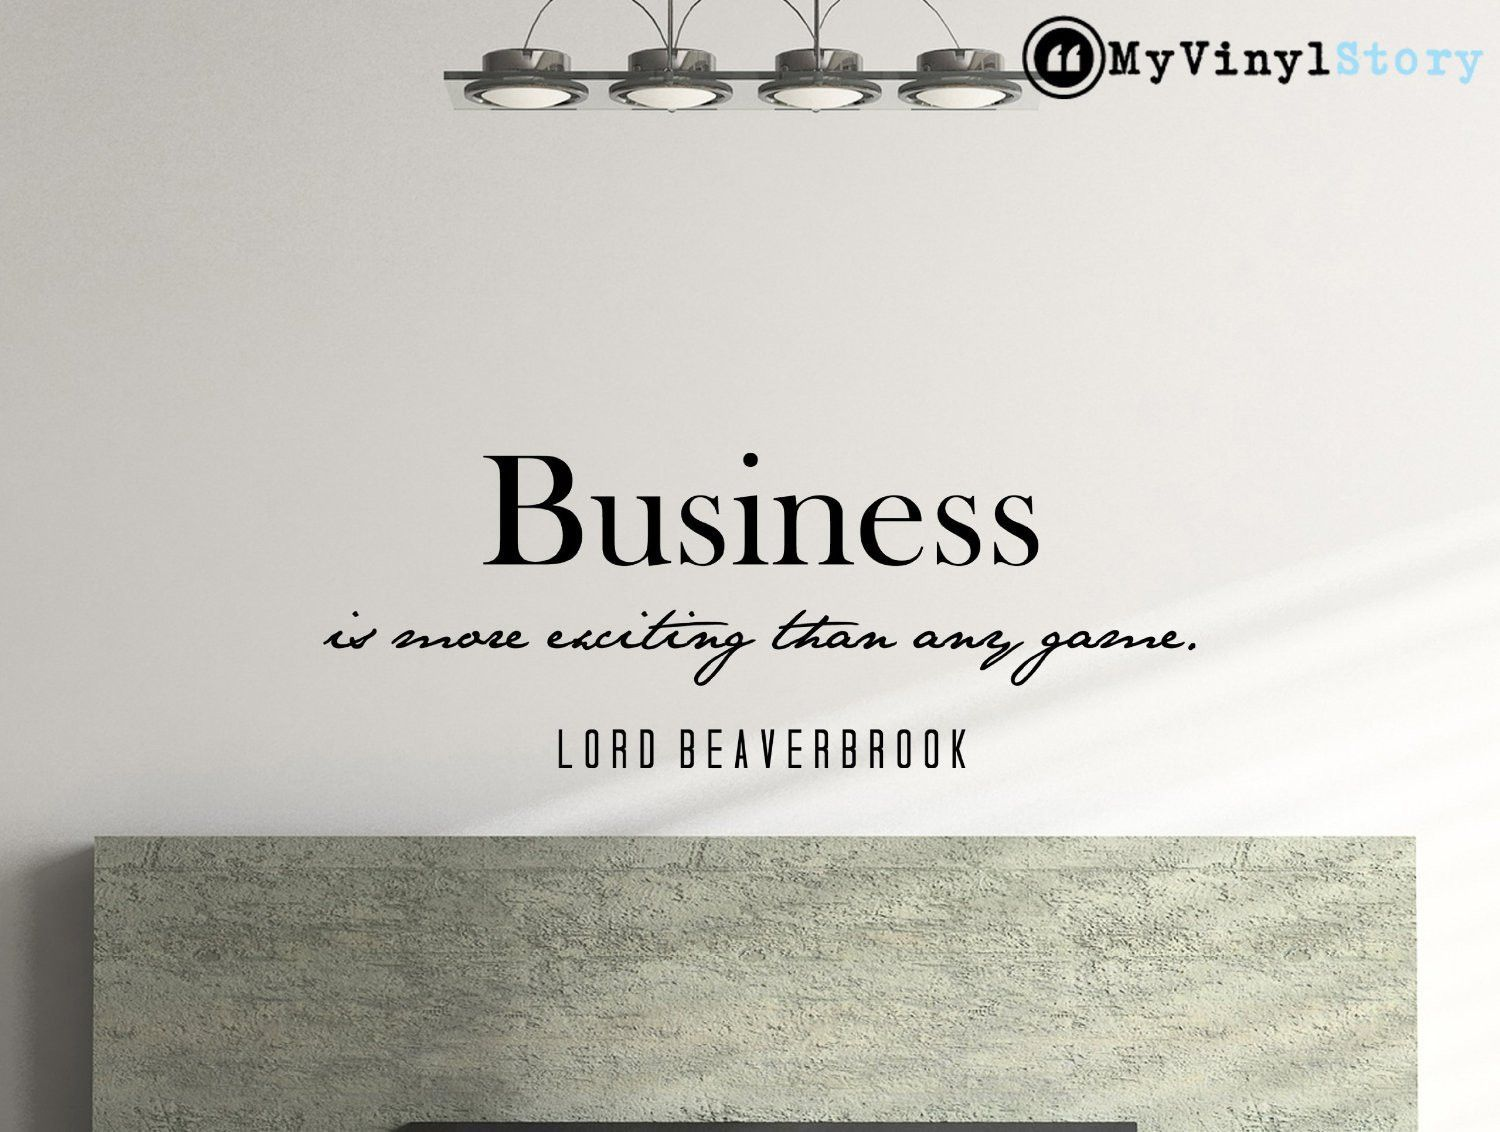 Lord Beaverbrook Inspirational Business Quote Wall Decal